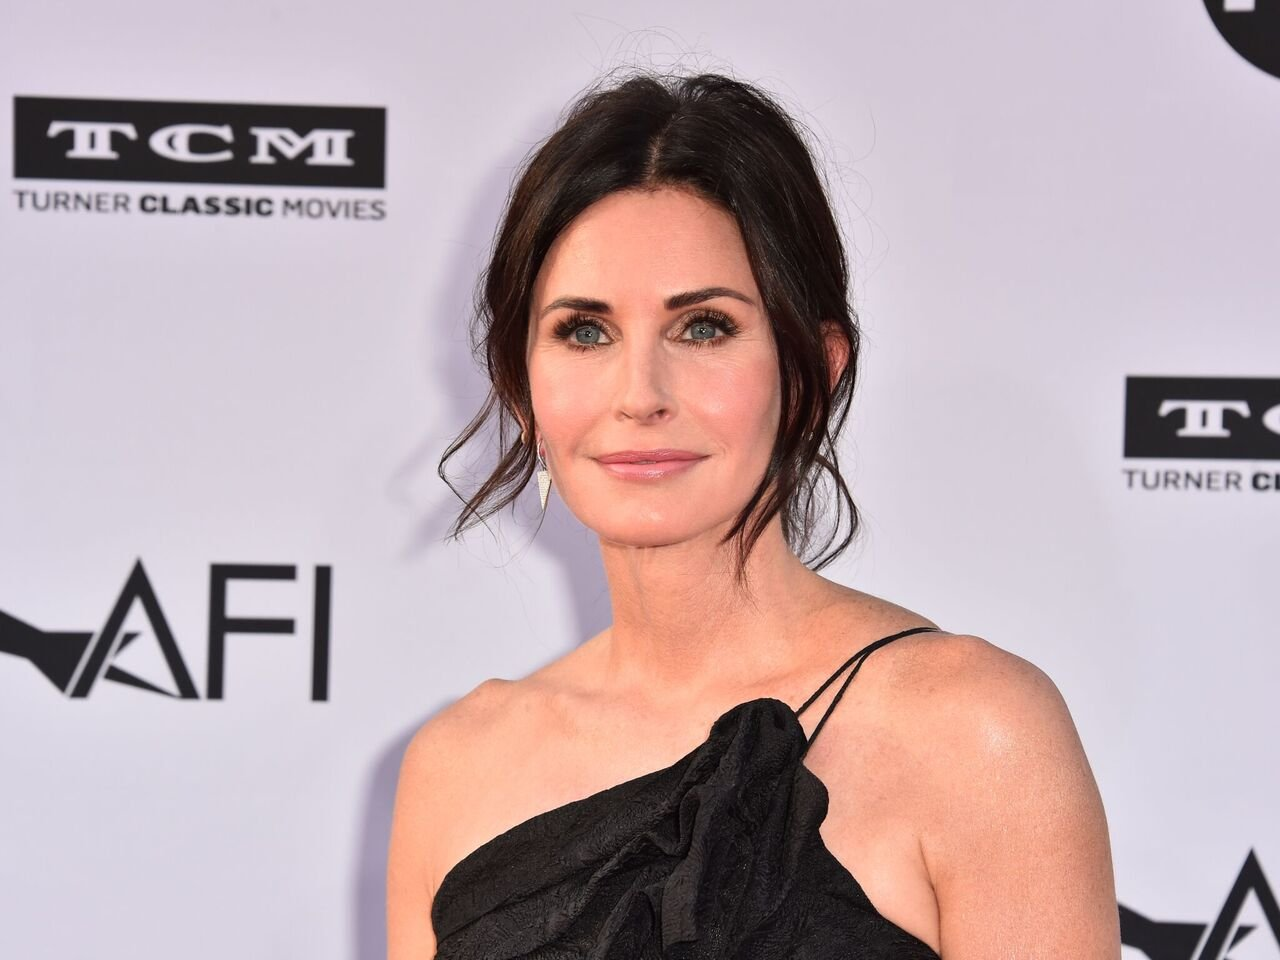 Courteney Cox attends American Film Institute's 46th Life Achievement Award Gala Tribute. | Source: Getty Images